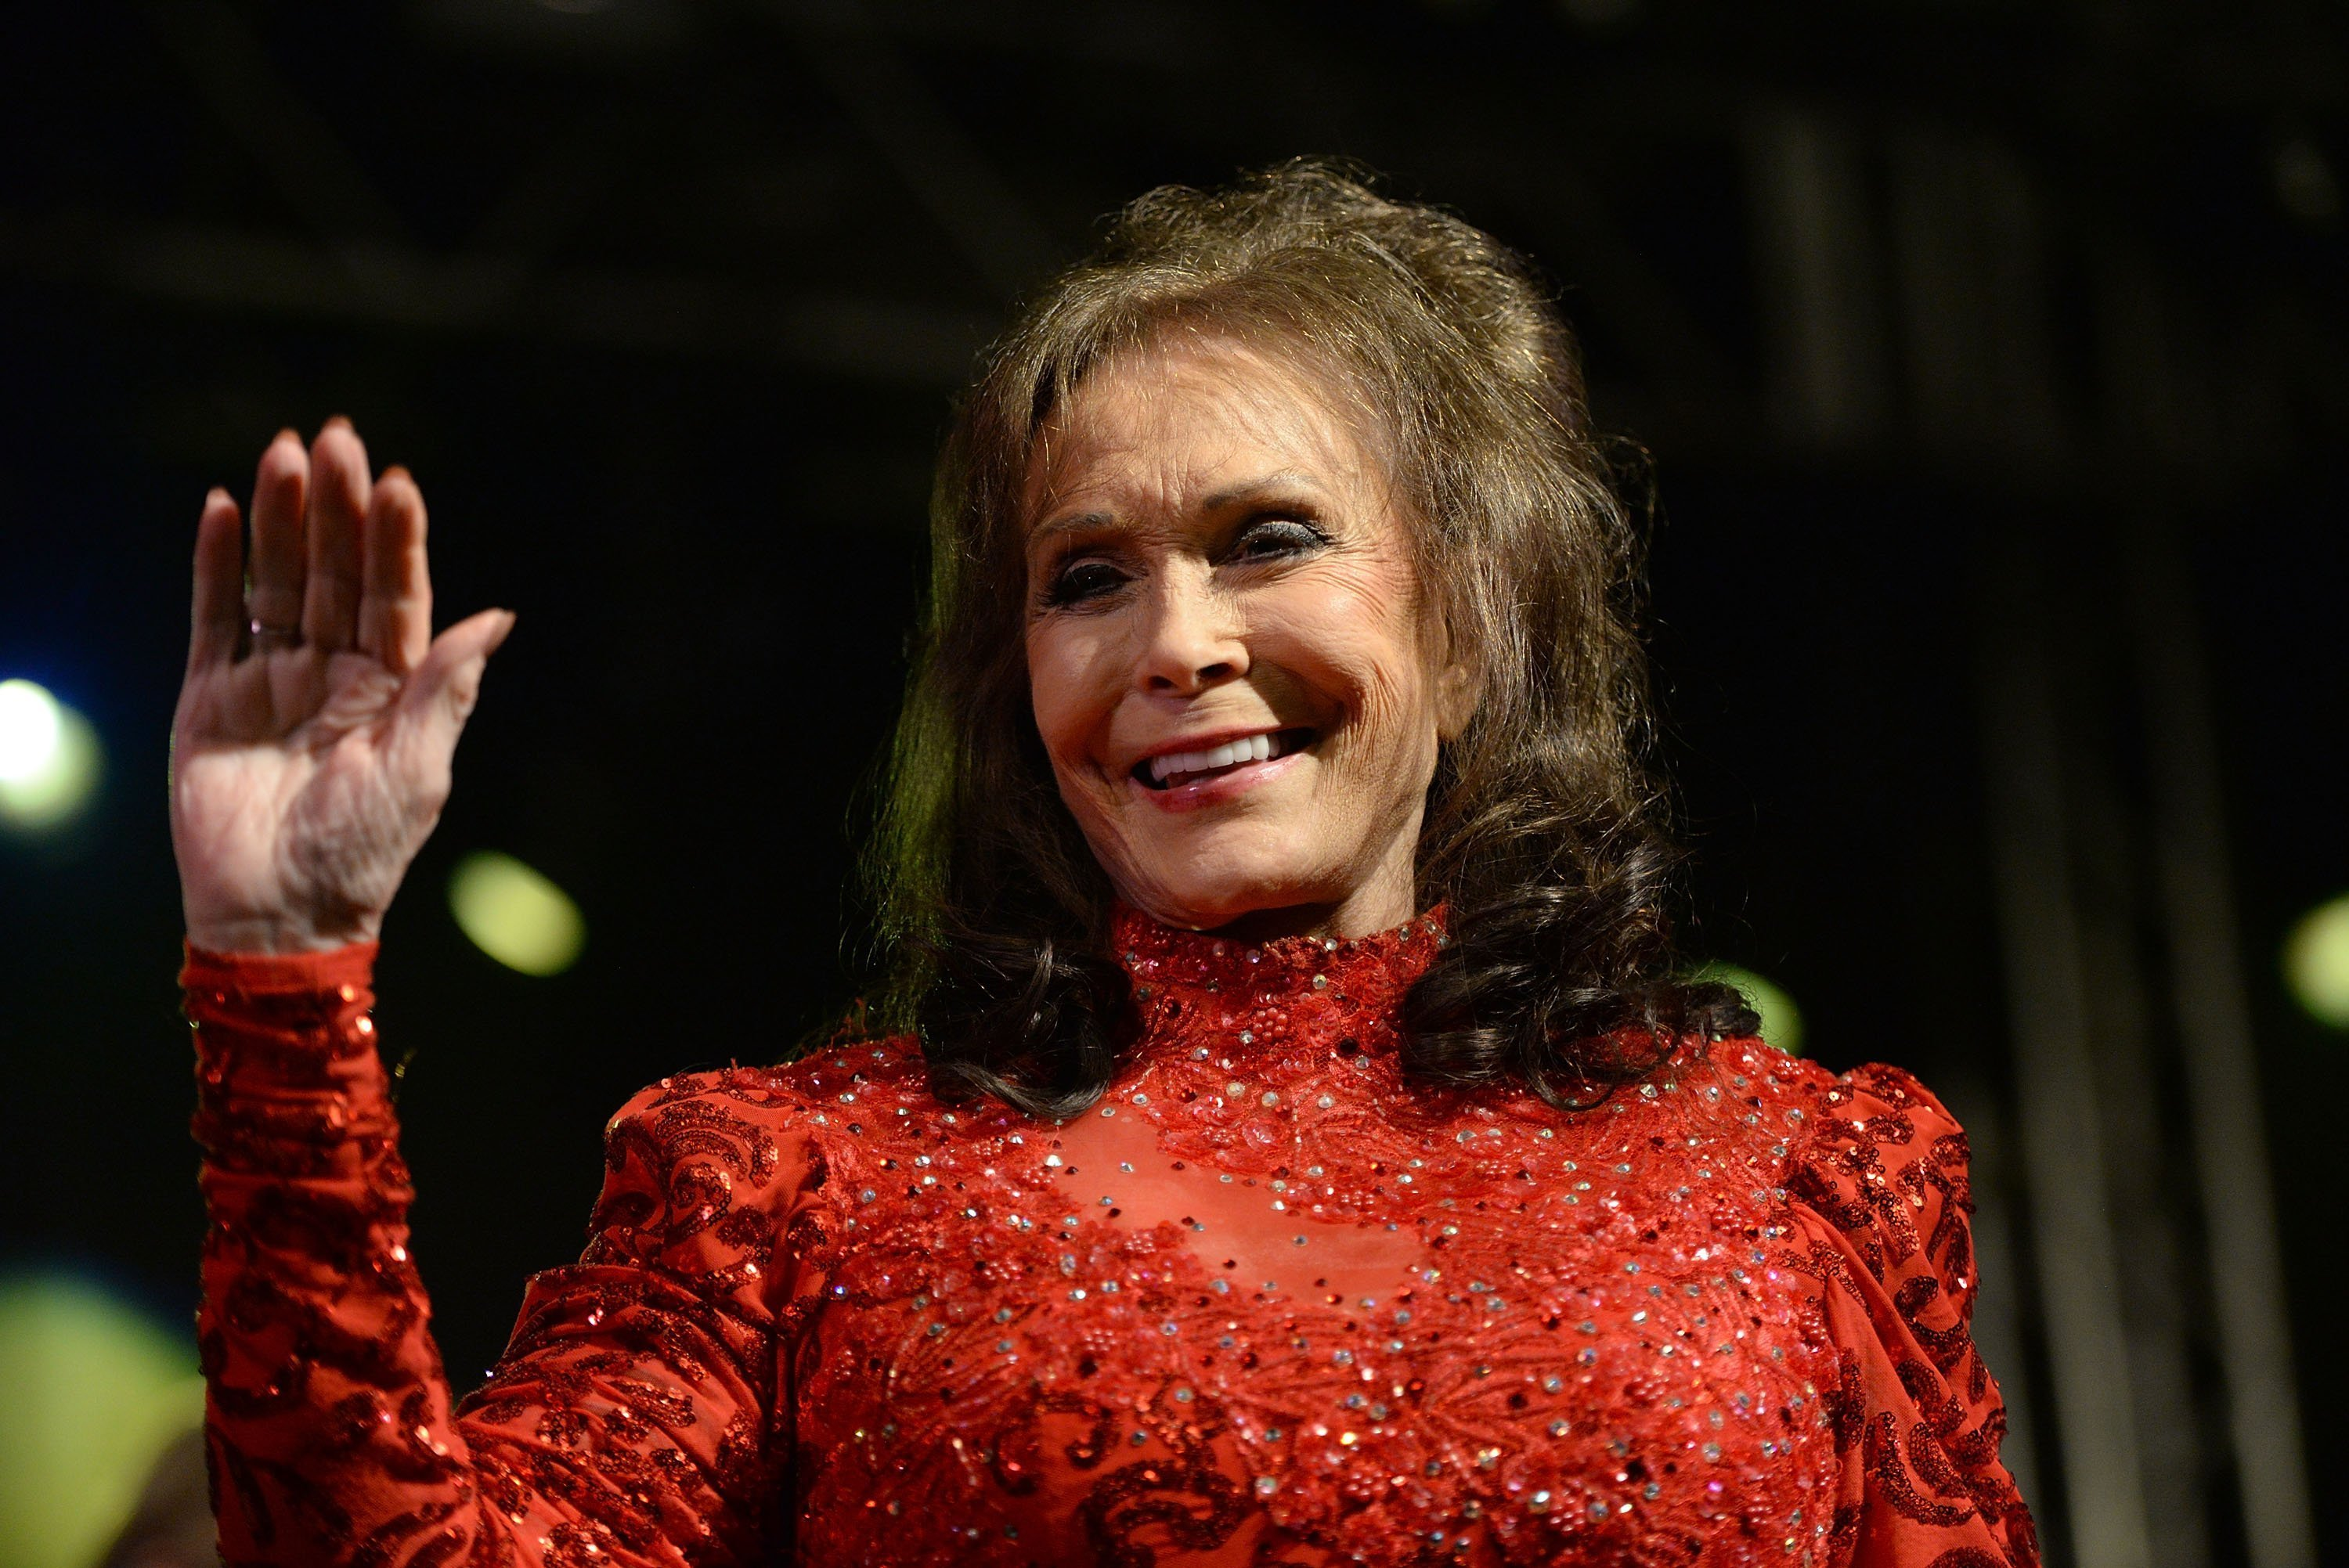 Singer Loretta Lynn performs onstage at Stubbs on March 17, 2016, in Austin, Texas. | Source: Getty Images.